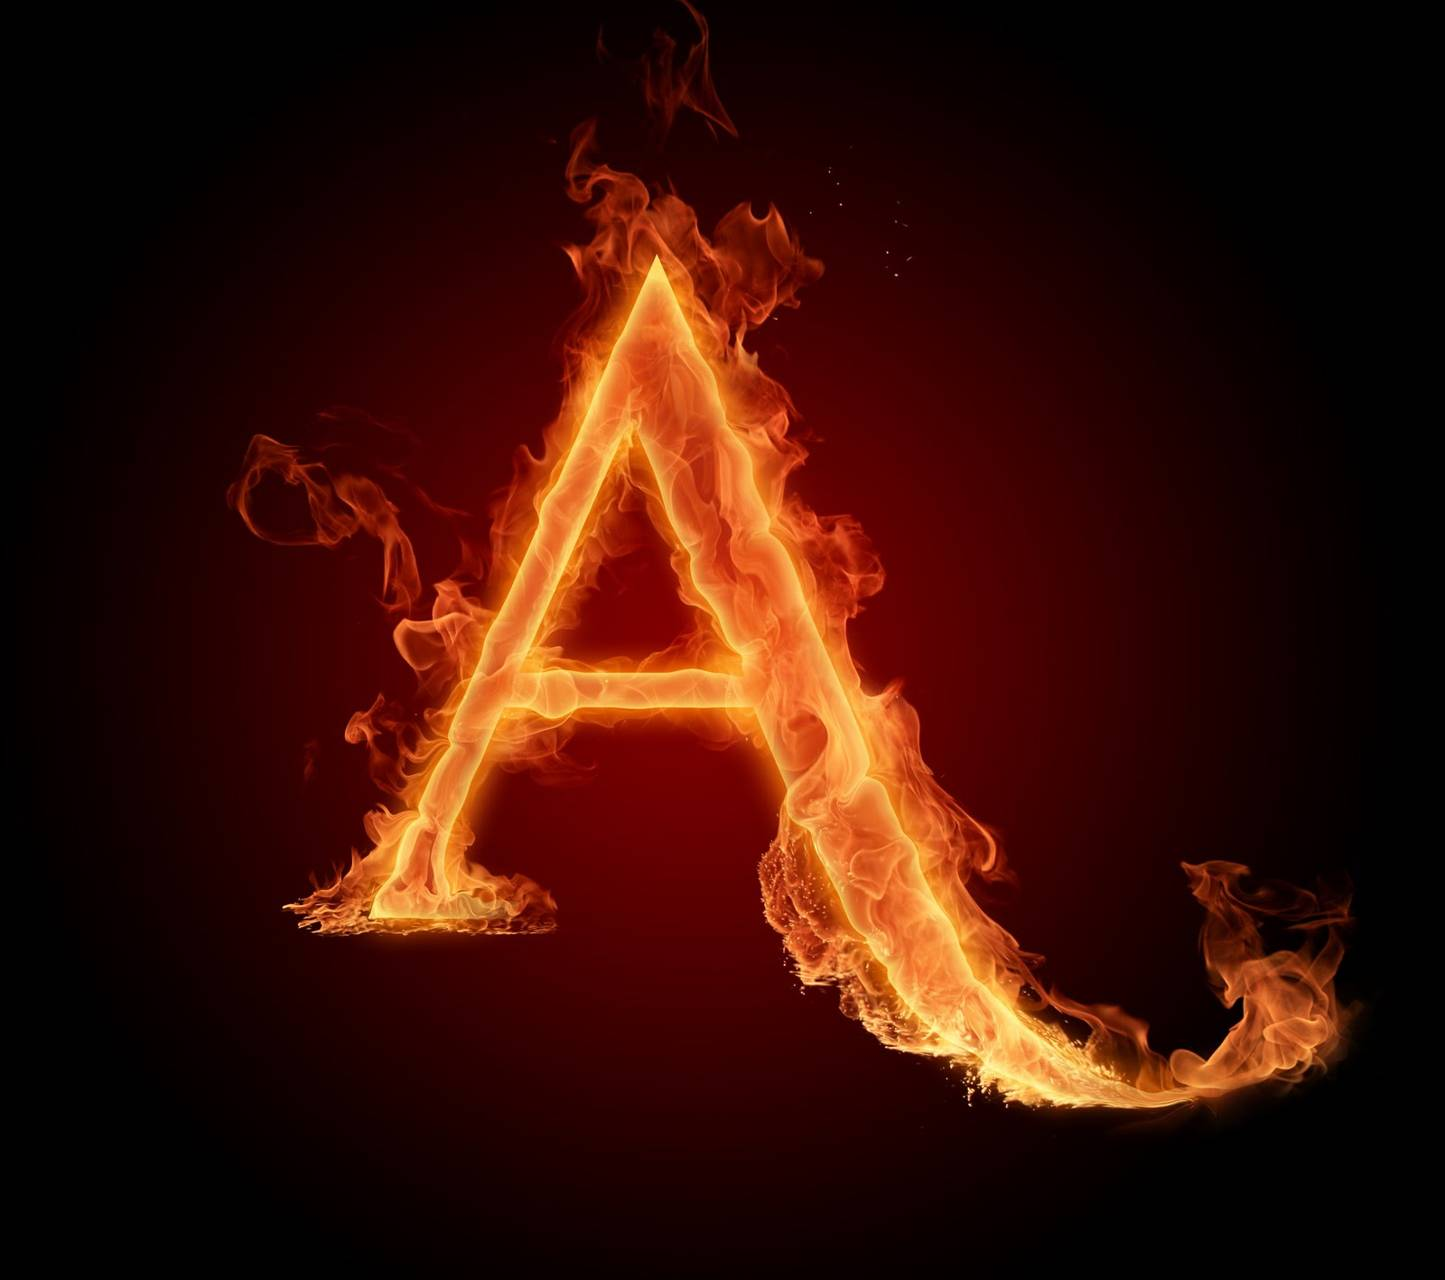 letter a in fire hd wallpaper by mr lazy 4d free on zedge